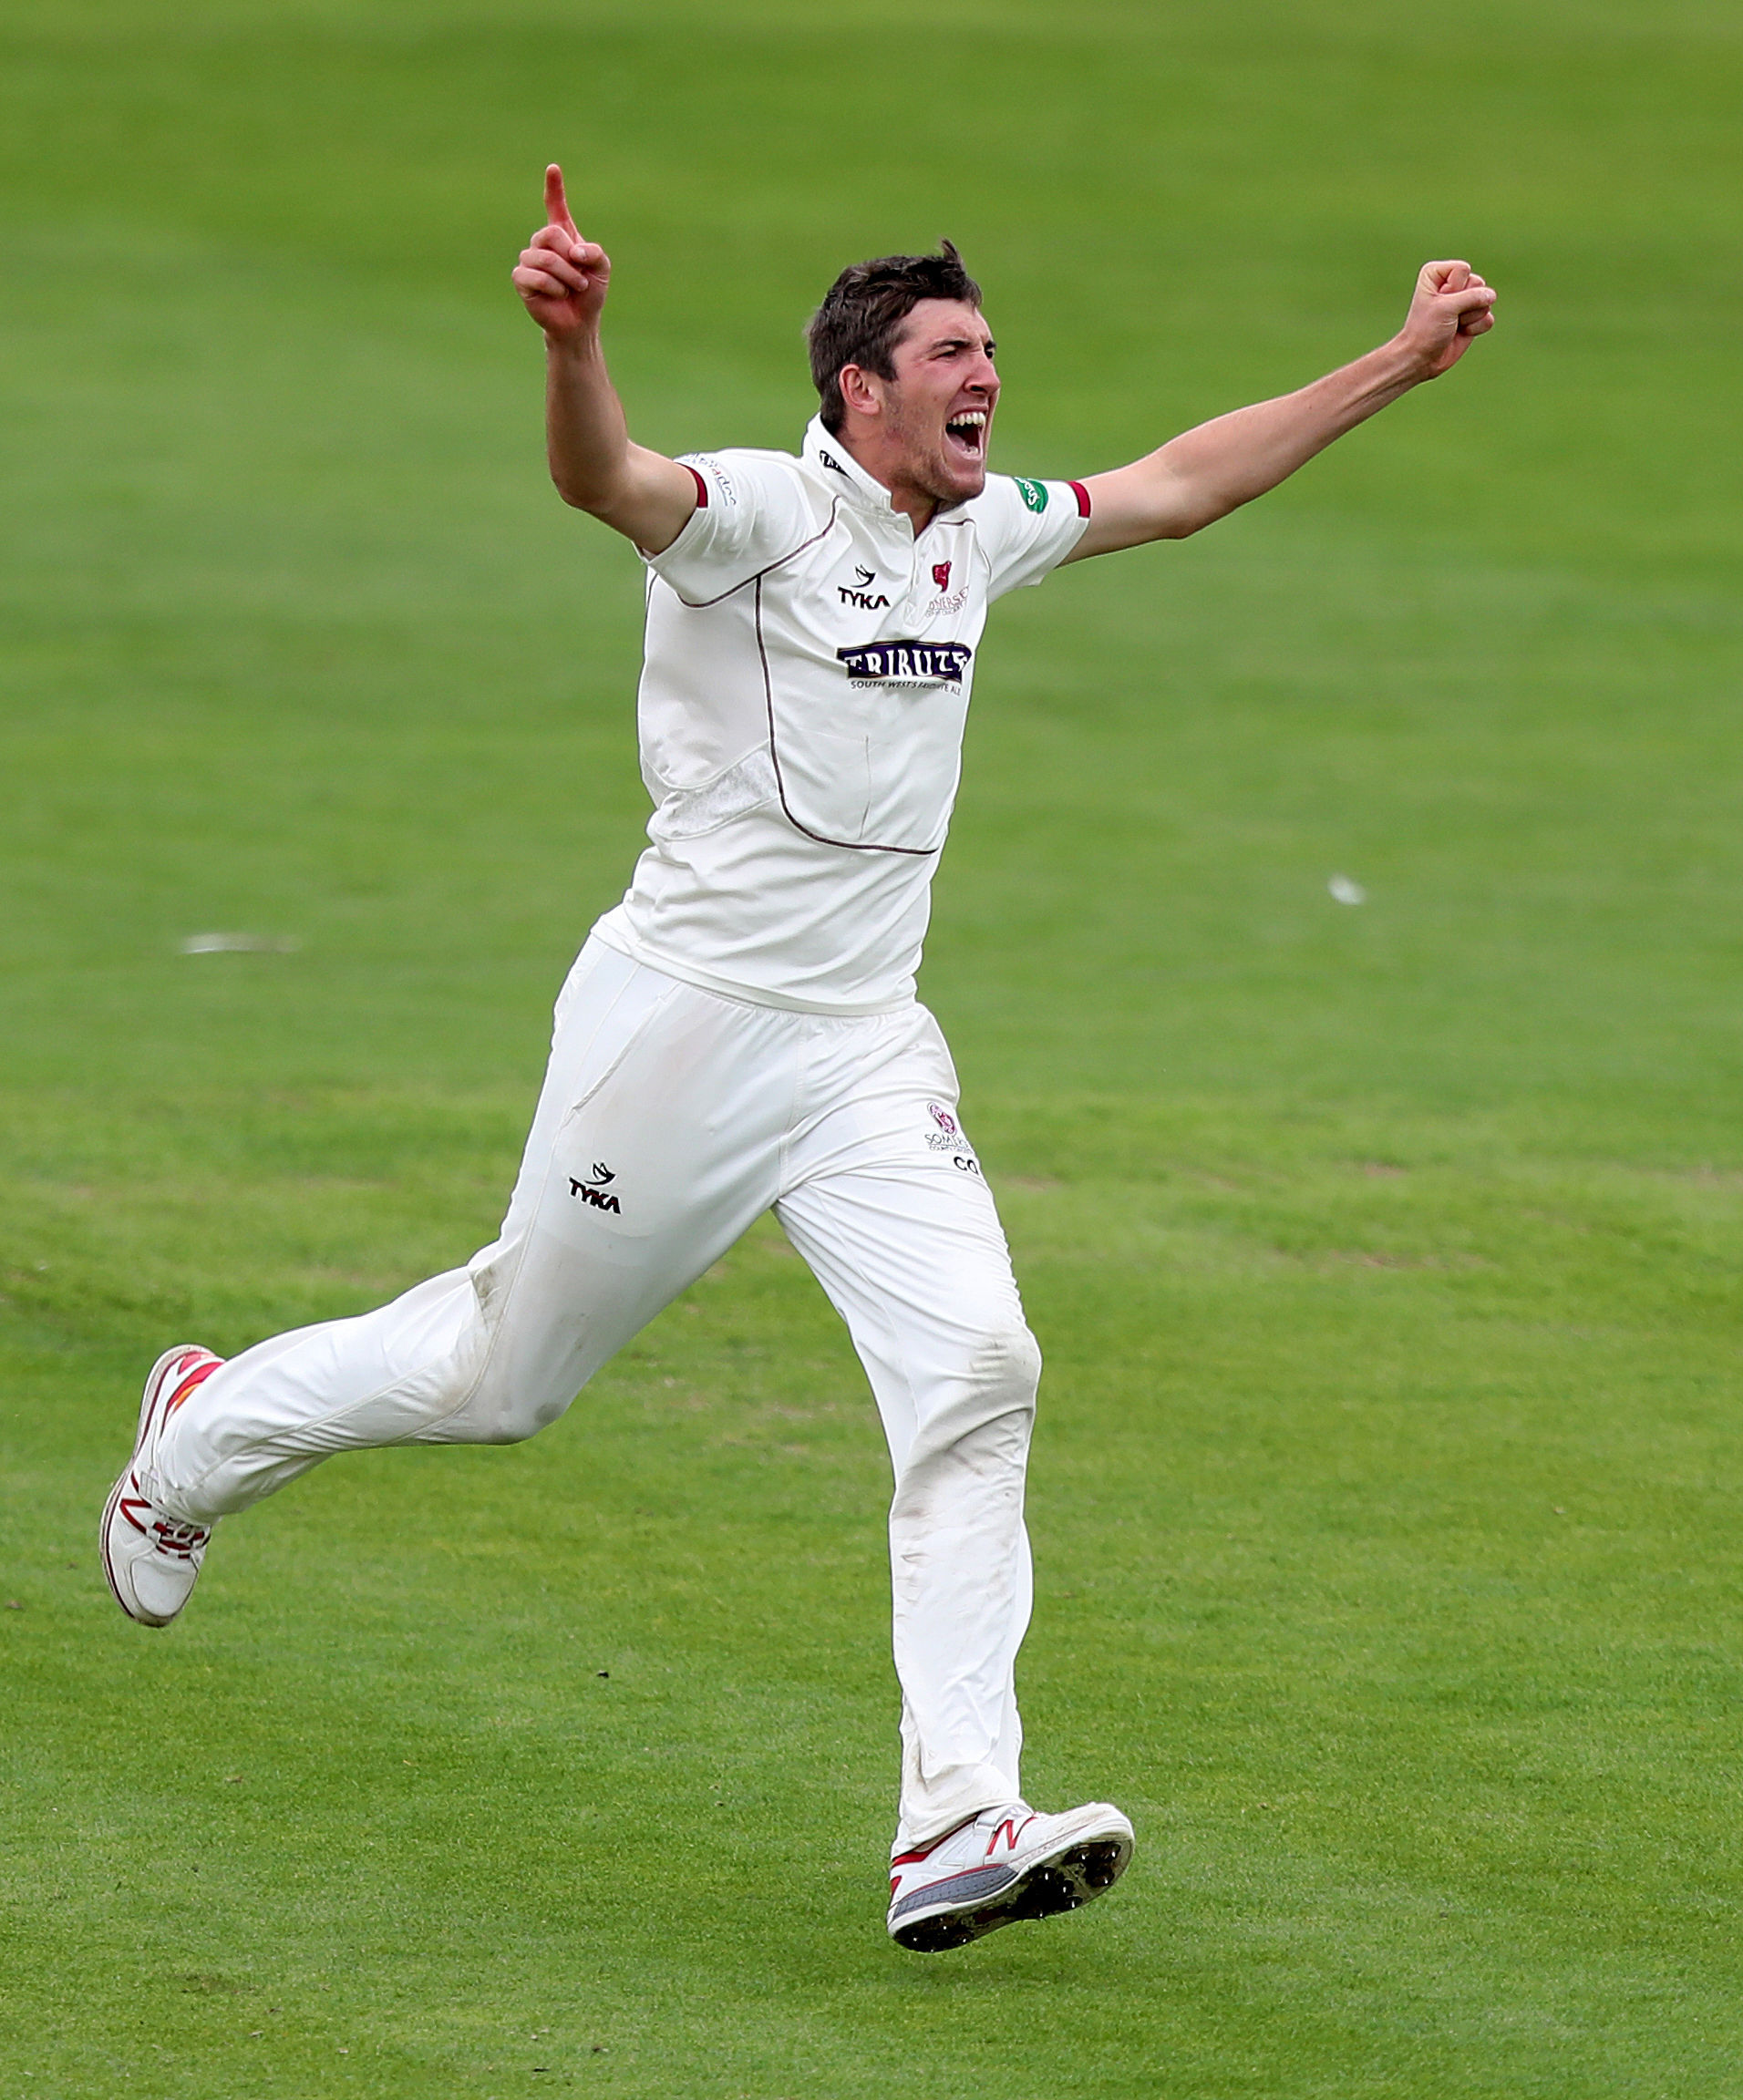 CALL-UP: Somerset's Craig Overton has won a place in England's Ashes squad. Pic: PA